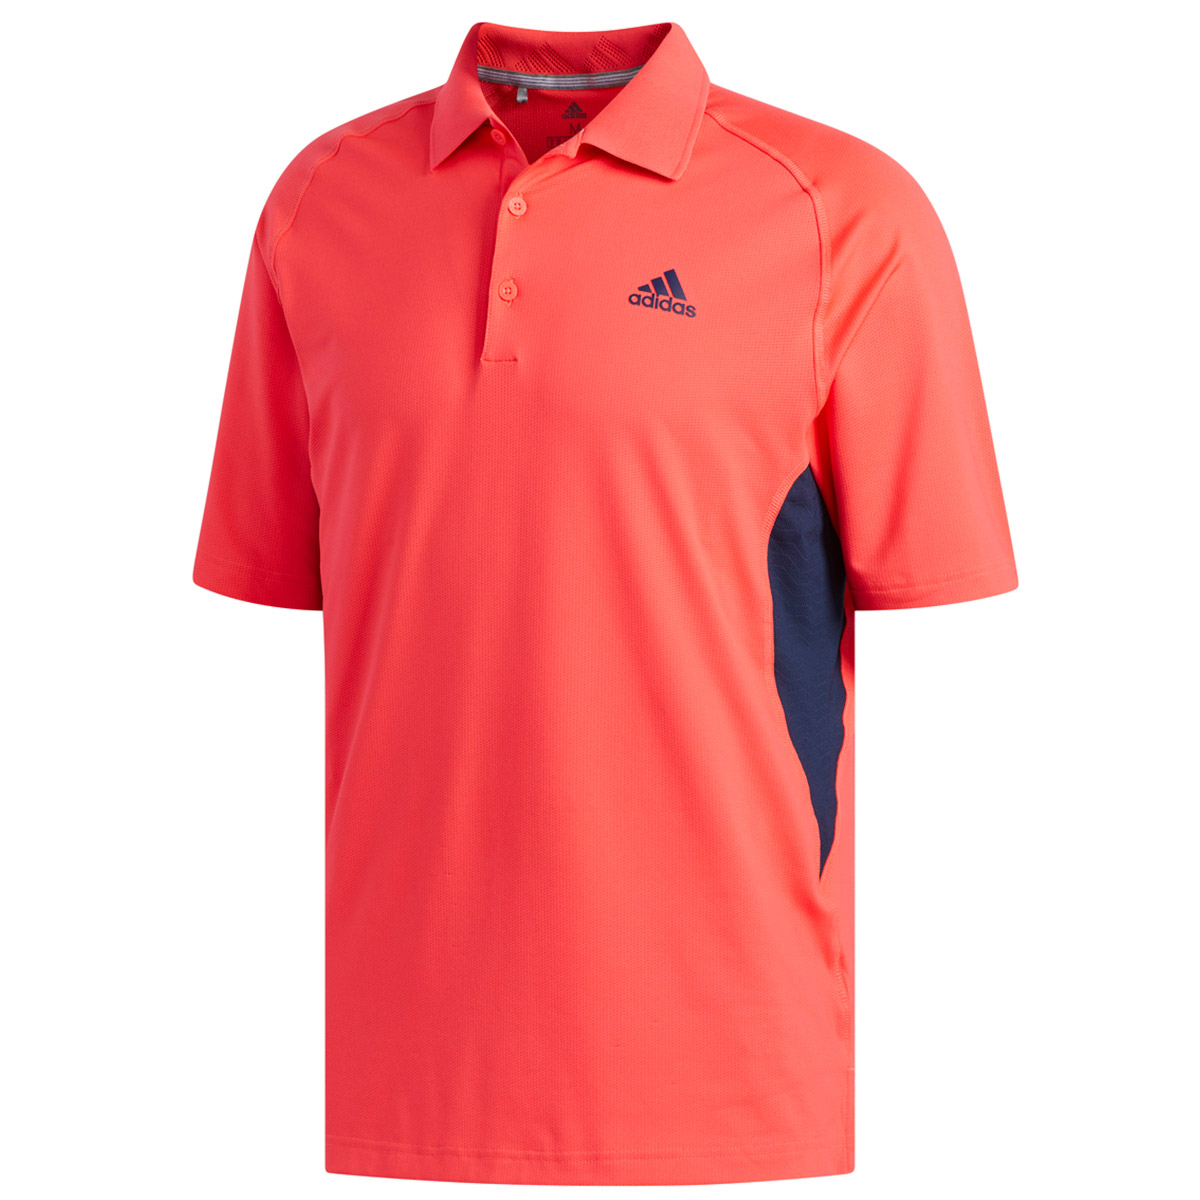 new product 9b797 a5a89 adidas Golf Ultimate 365 Climacool Solid Polo Shirt